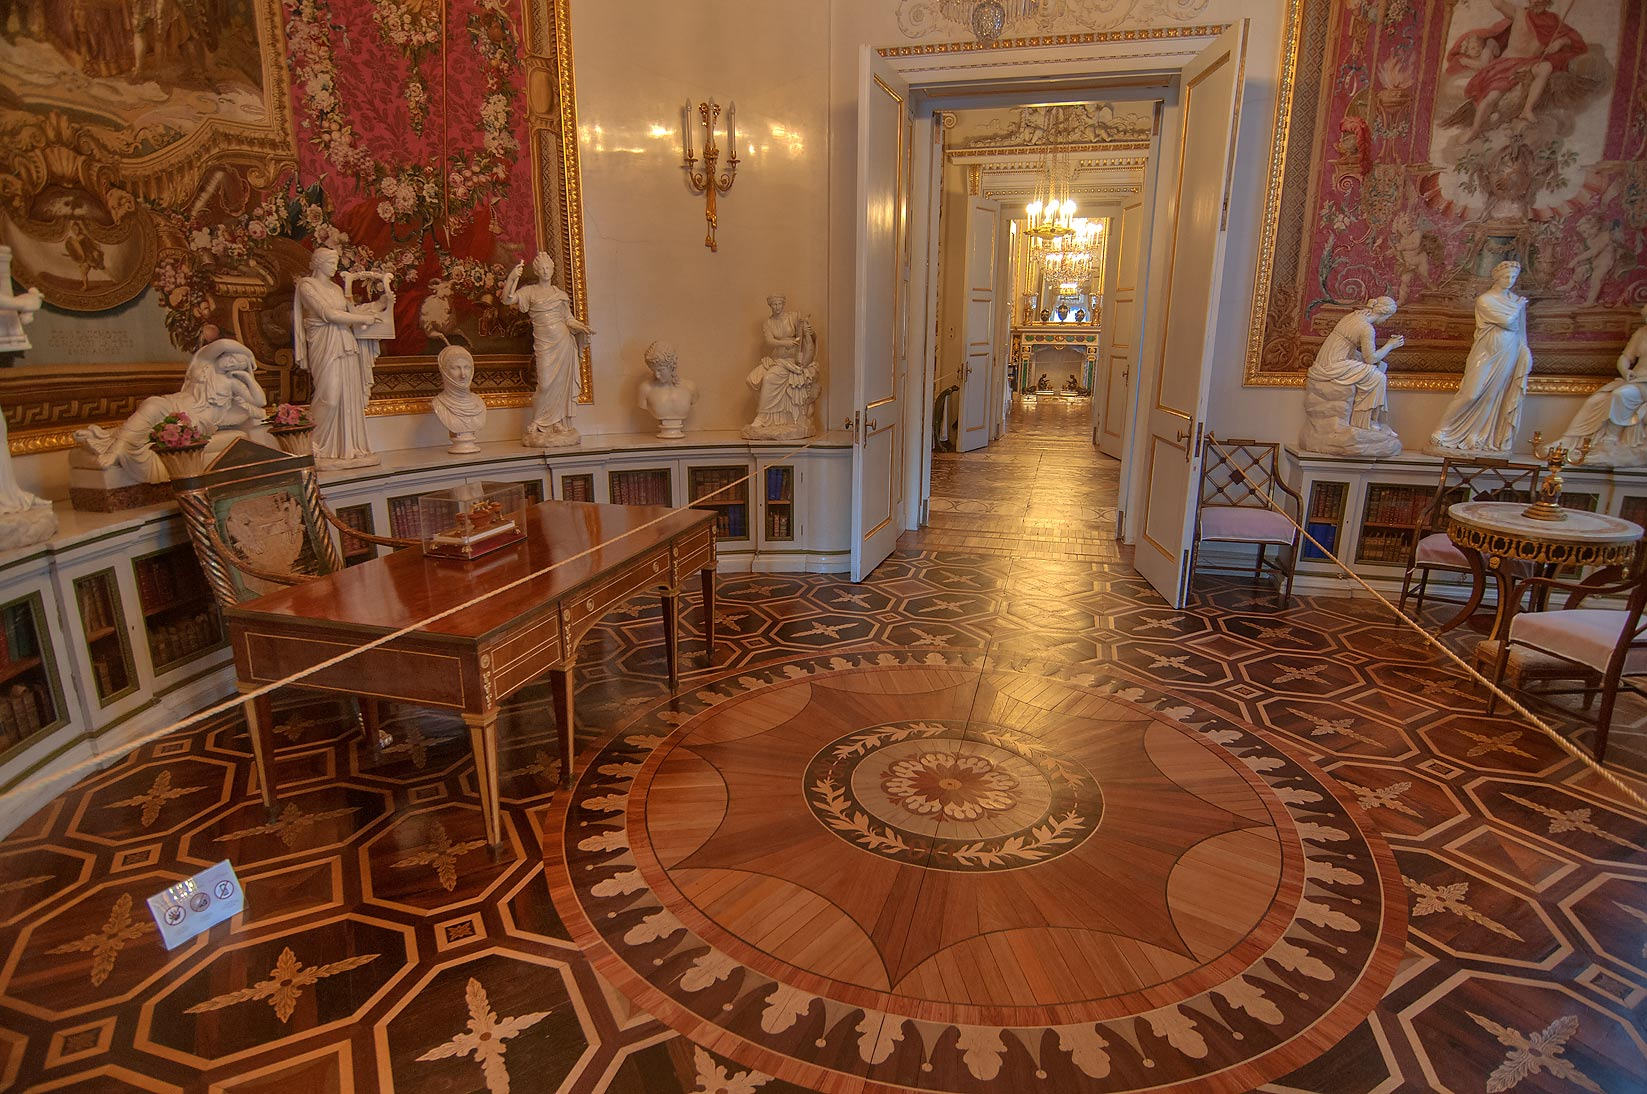 Parquet decoration in Pavlovsky Palace. Pavlovsk, a suburb of St.Petersburg, Russia